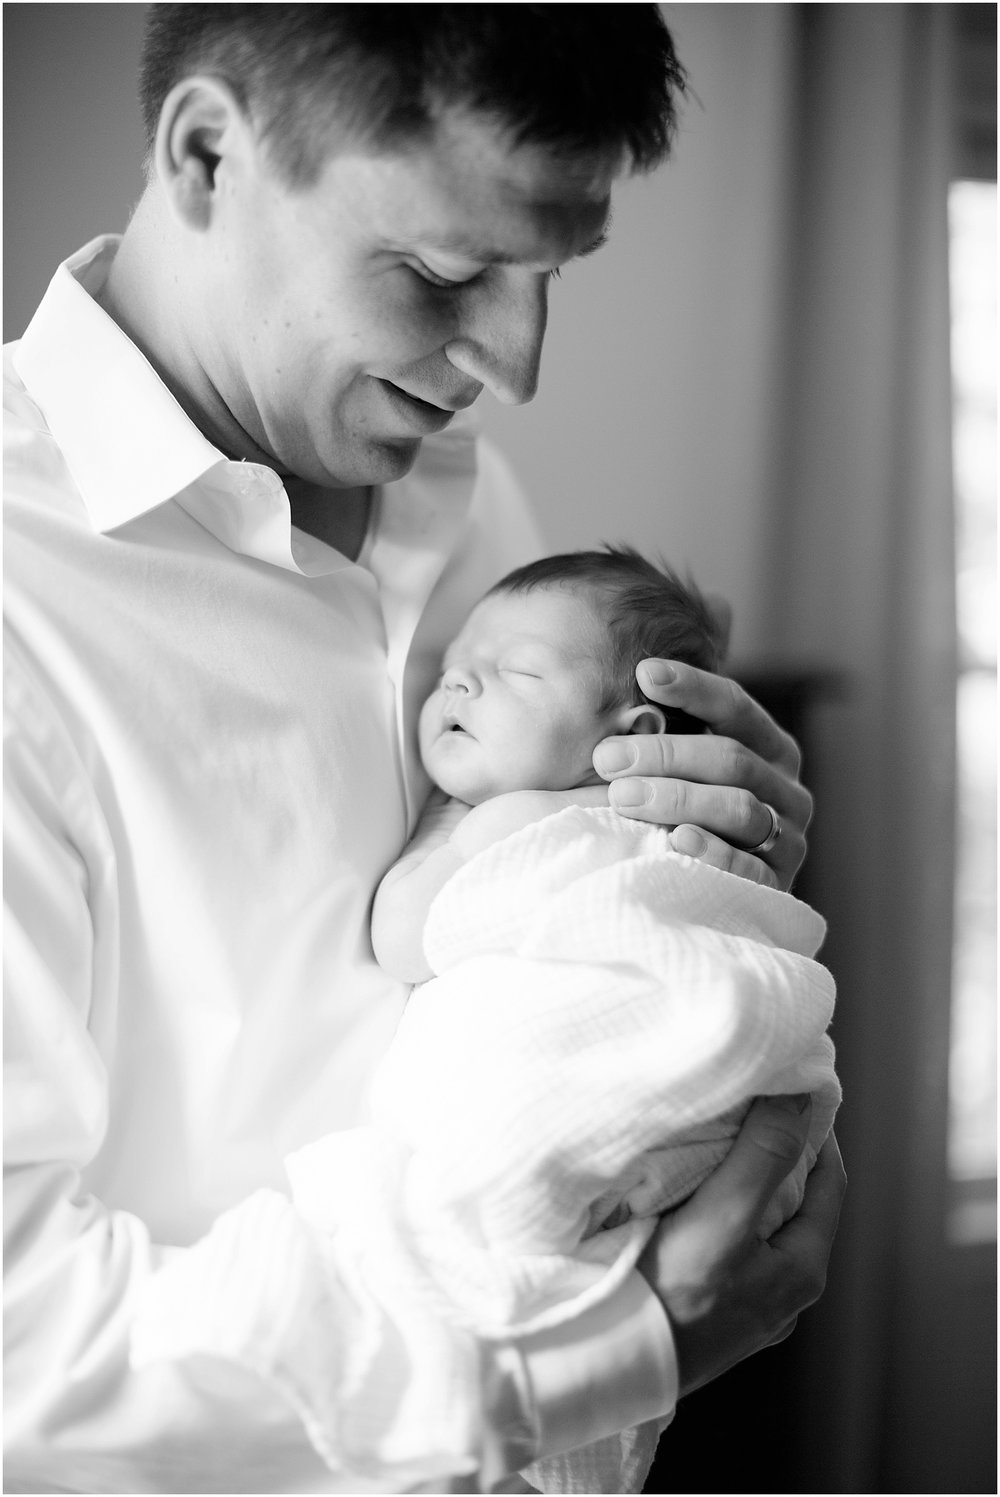 Ashley Powell Photography William Newborn Sneak Peek_0037.jpg